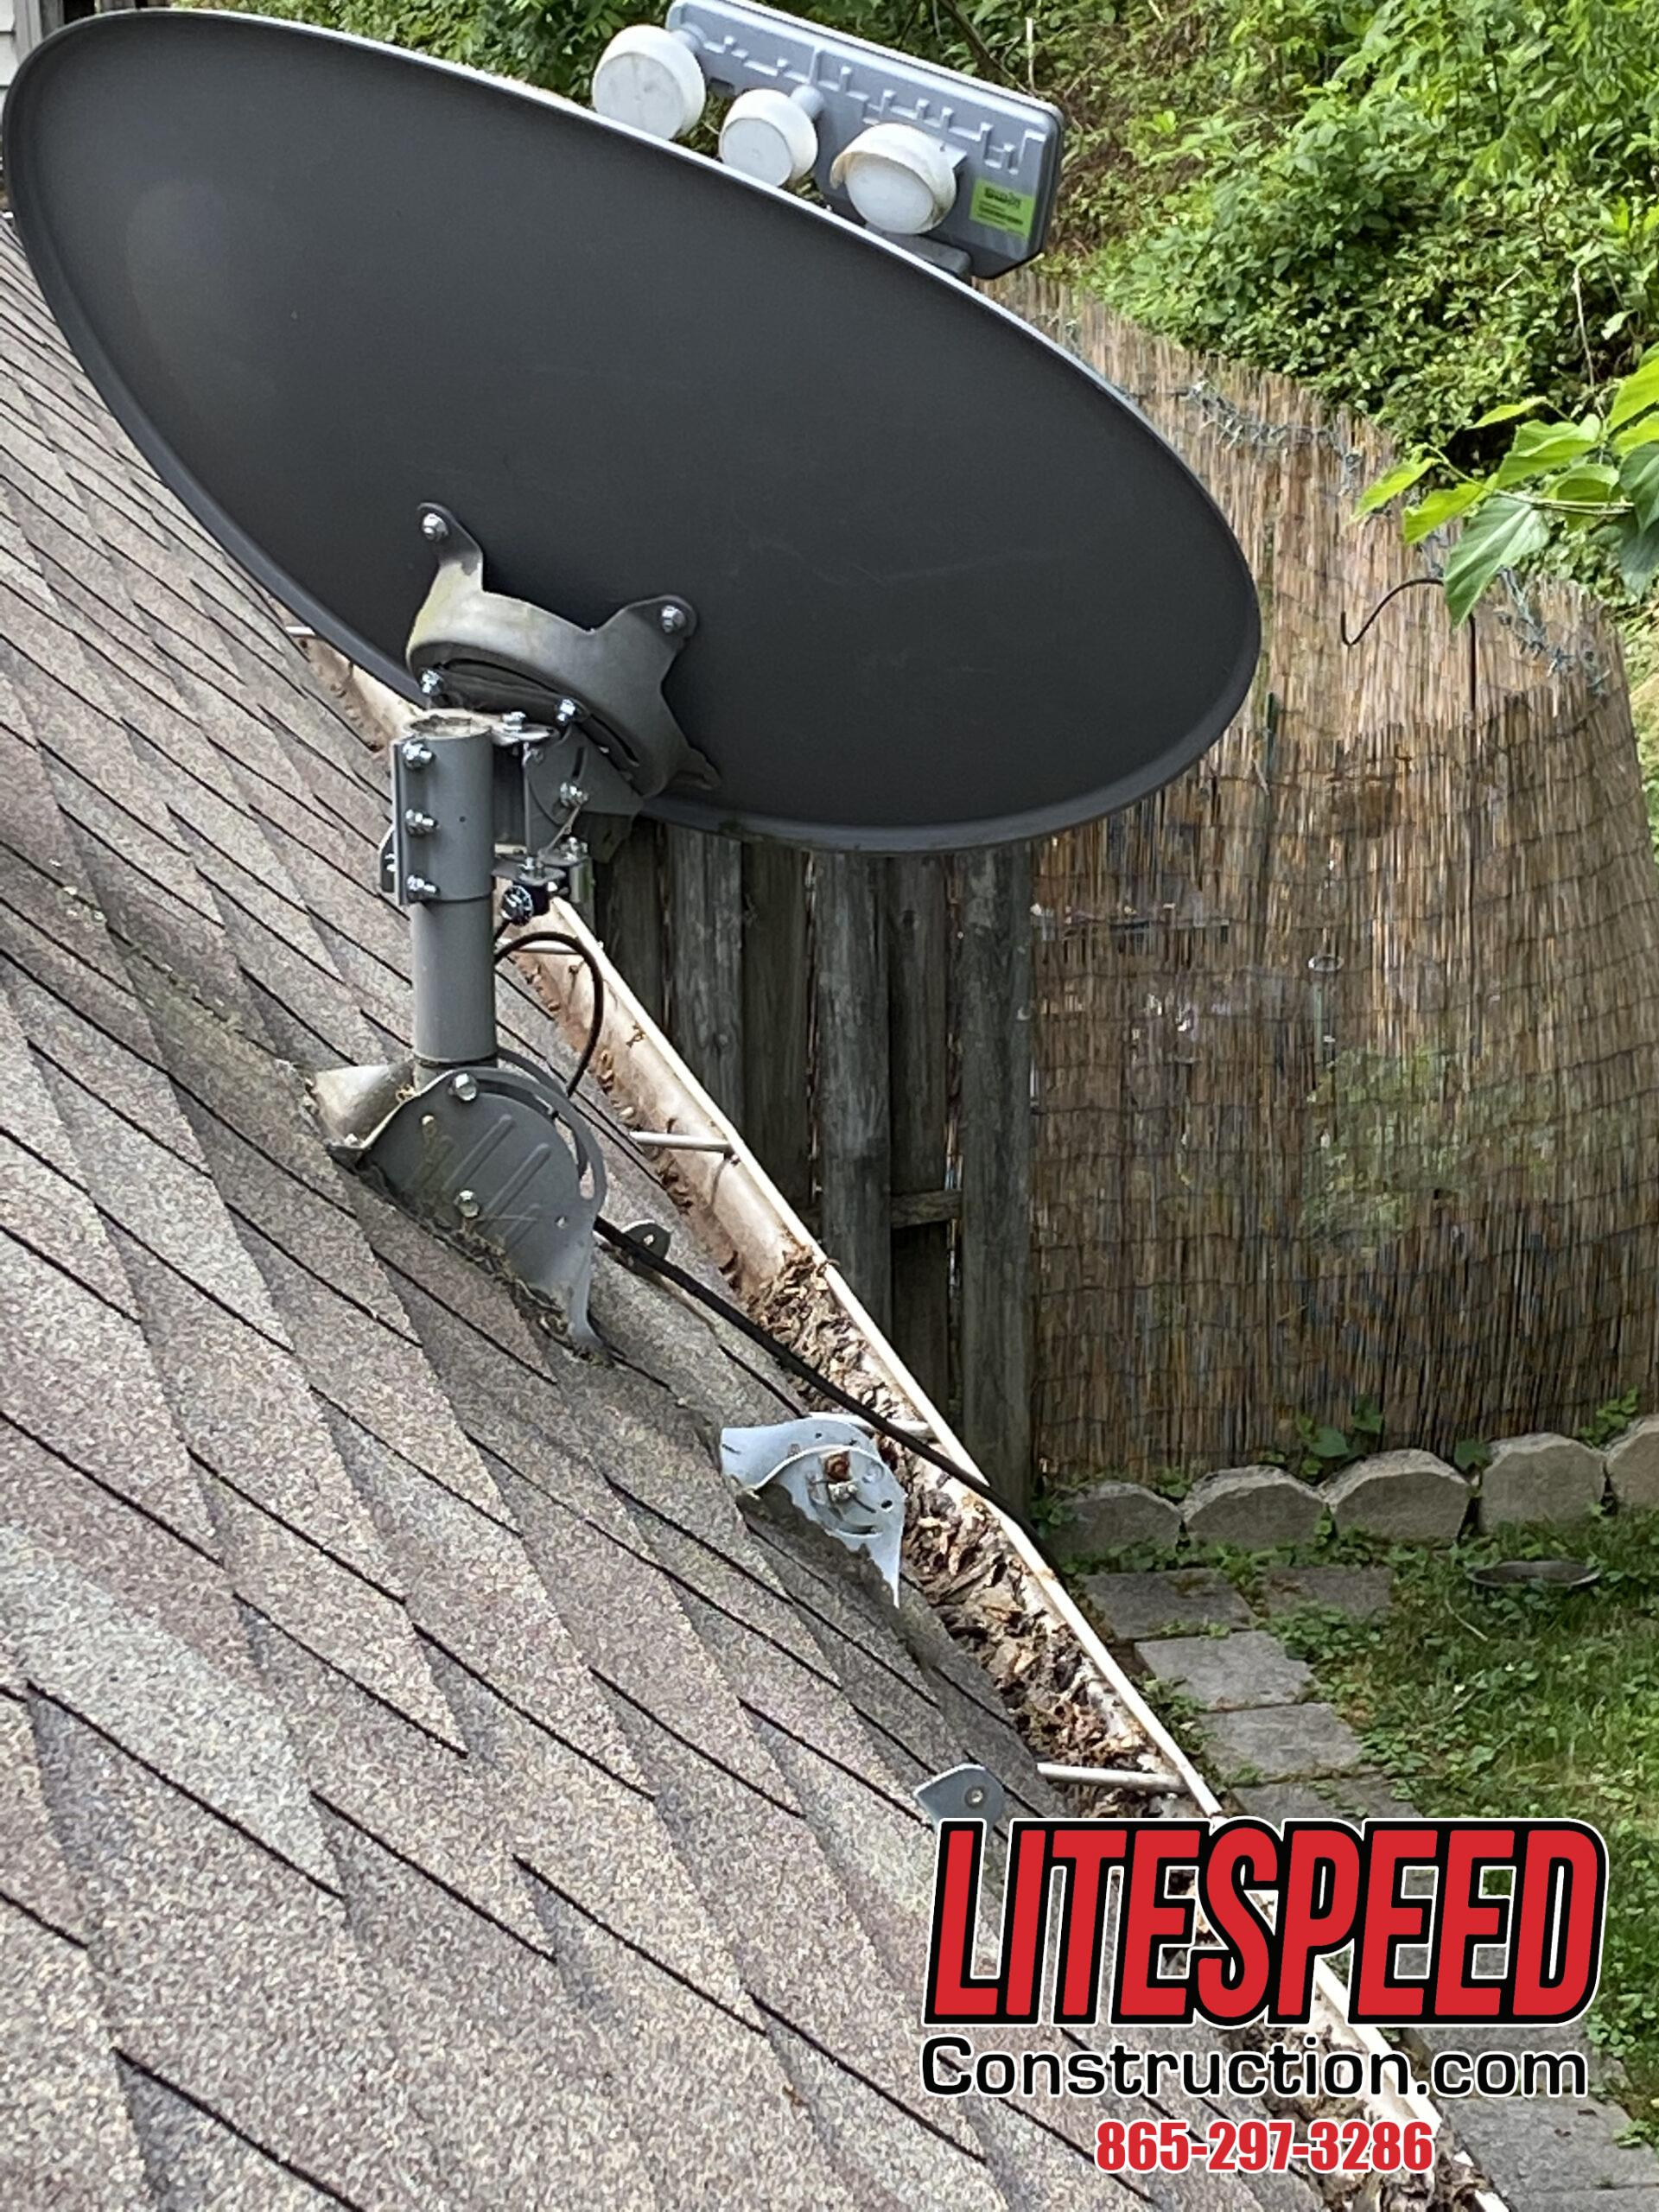 This is a picture of a satellite dish on a roof